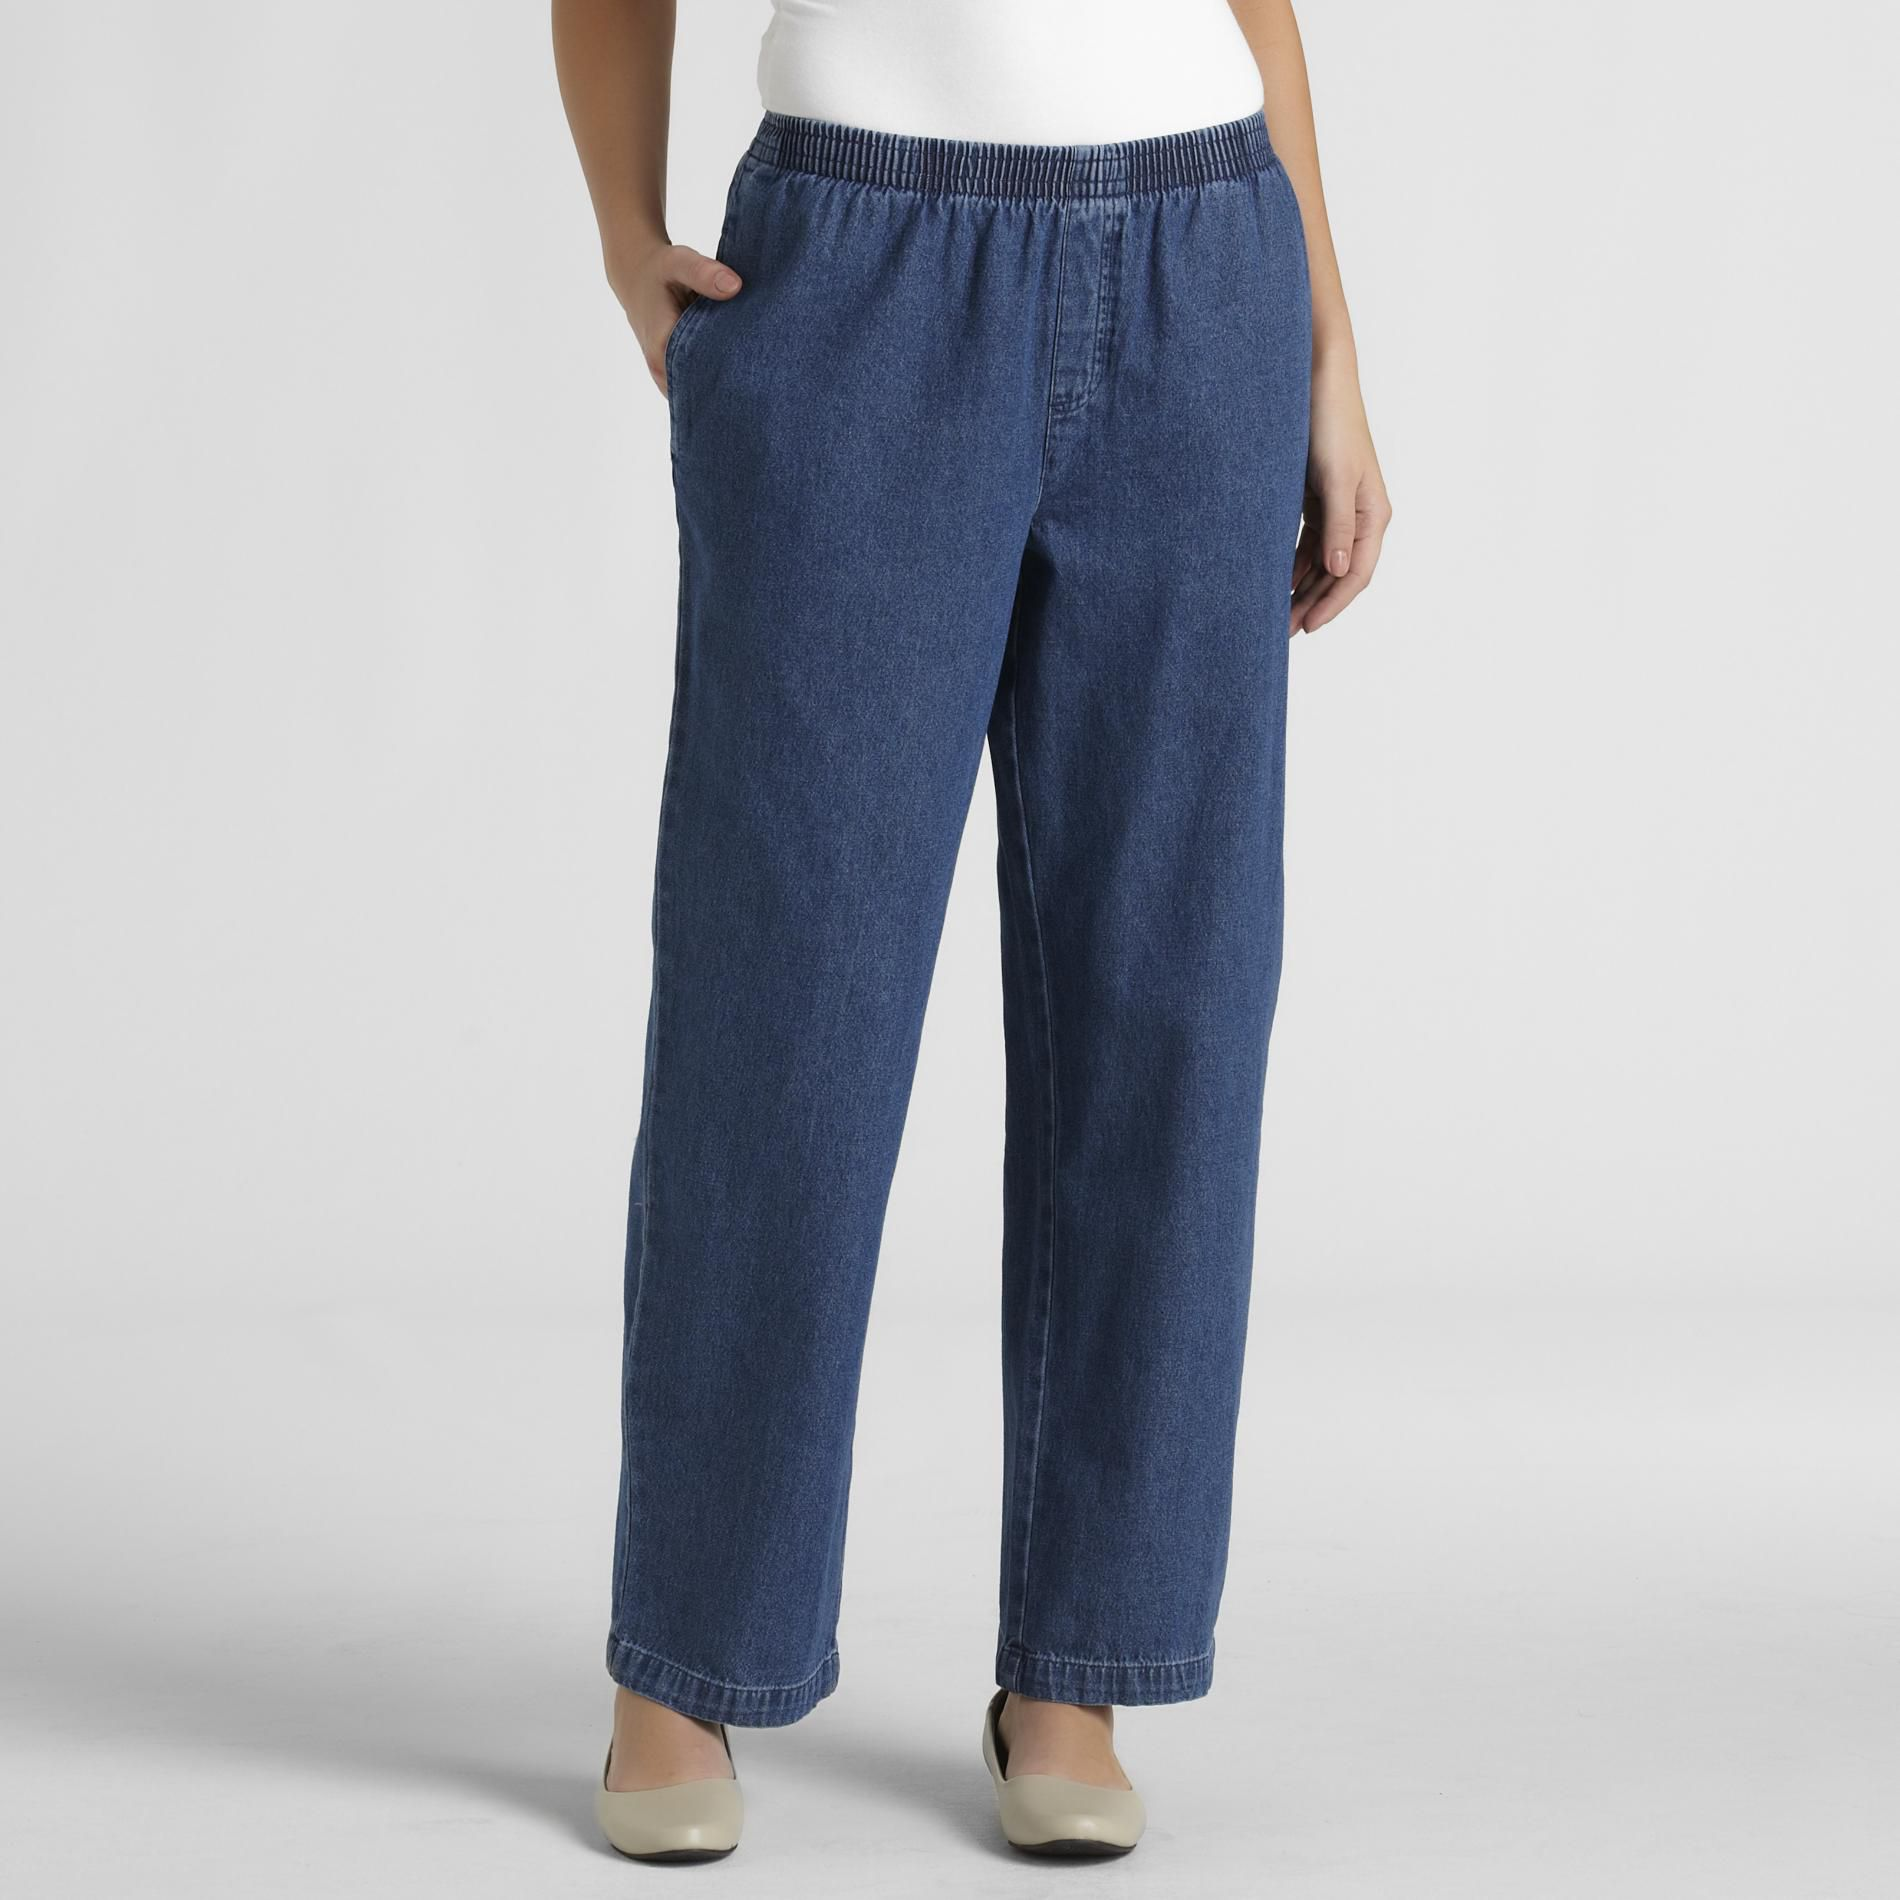 Basic Editions Women's Relaxed-Fit Jeans at Kmart.com